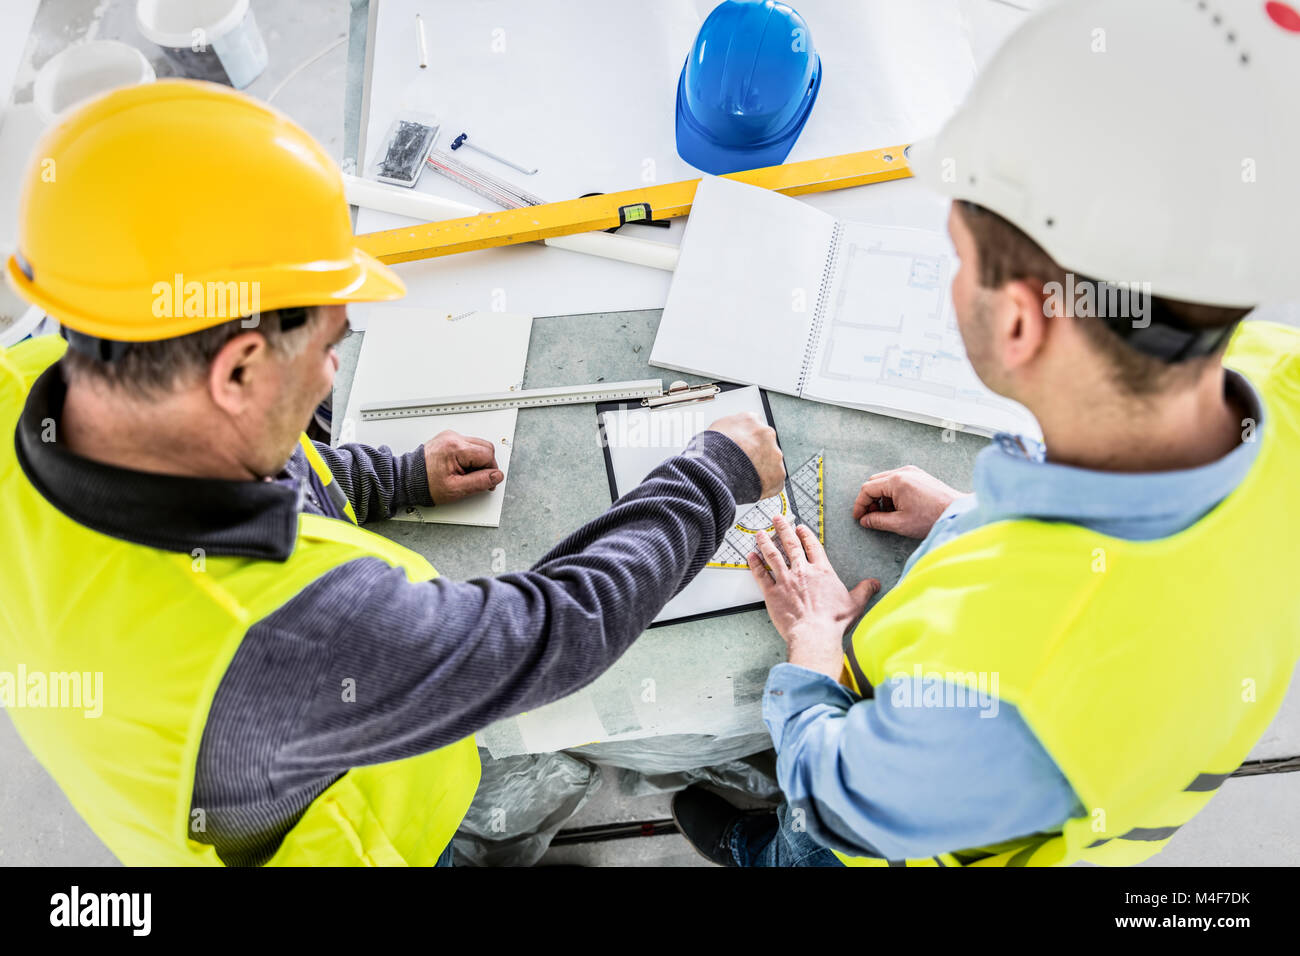 Architect and construction engineer project analysis. - Stock Image